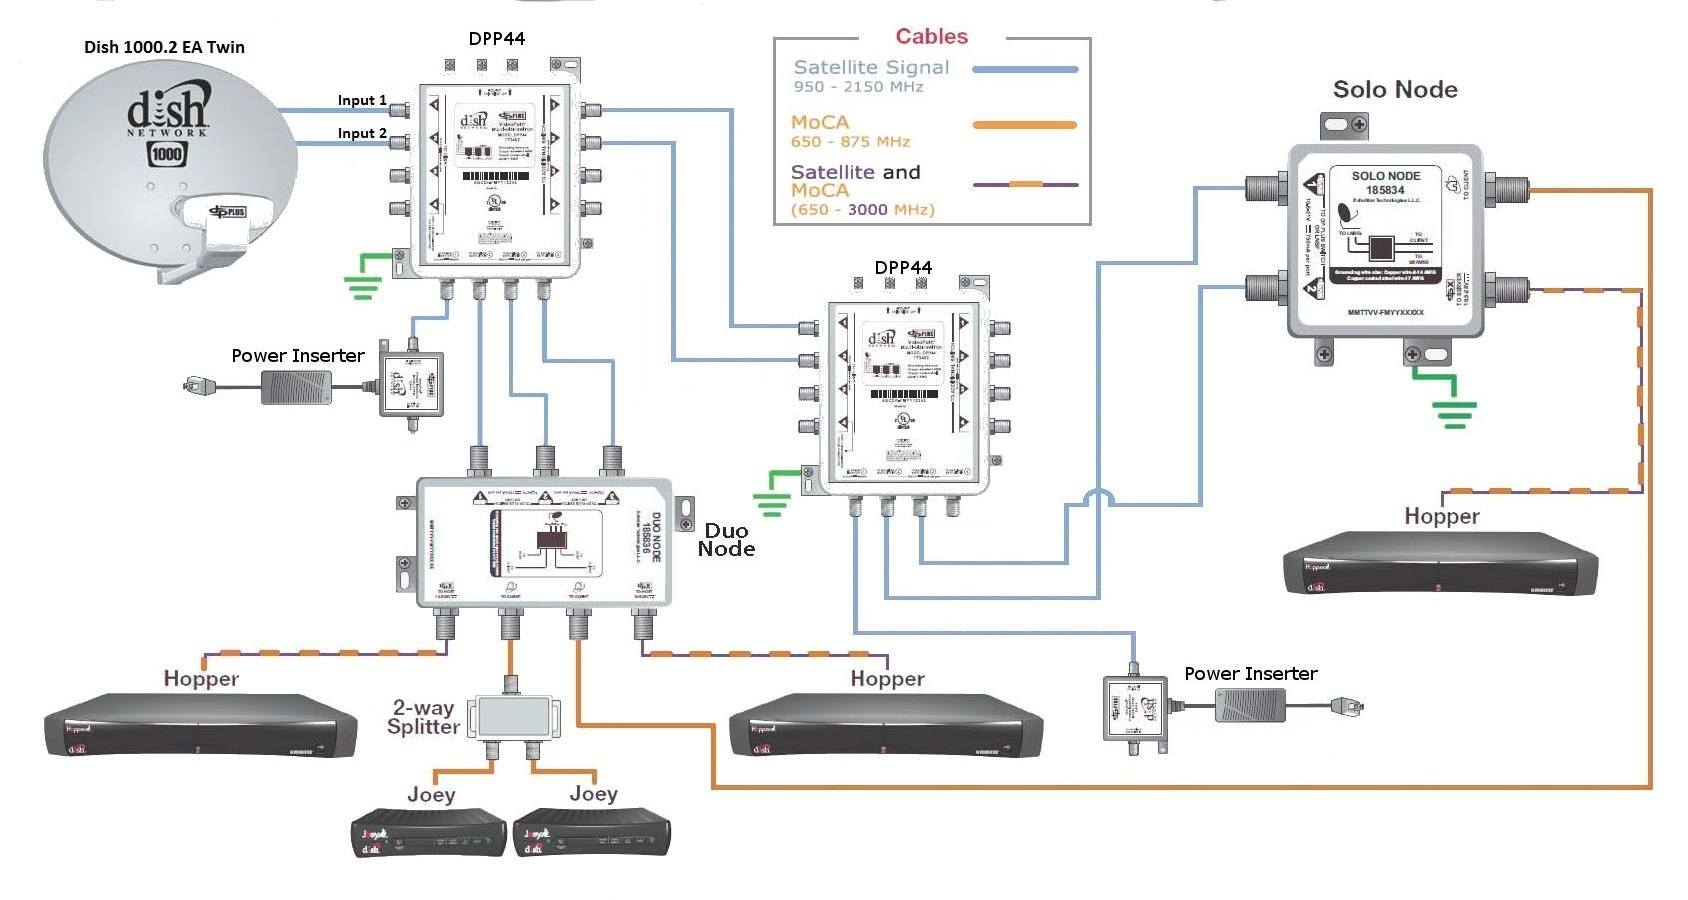 dish network wiring diagram efcaviation com dish network wiring diagrams dual tuner at creativeand.co